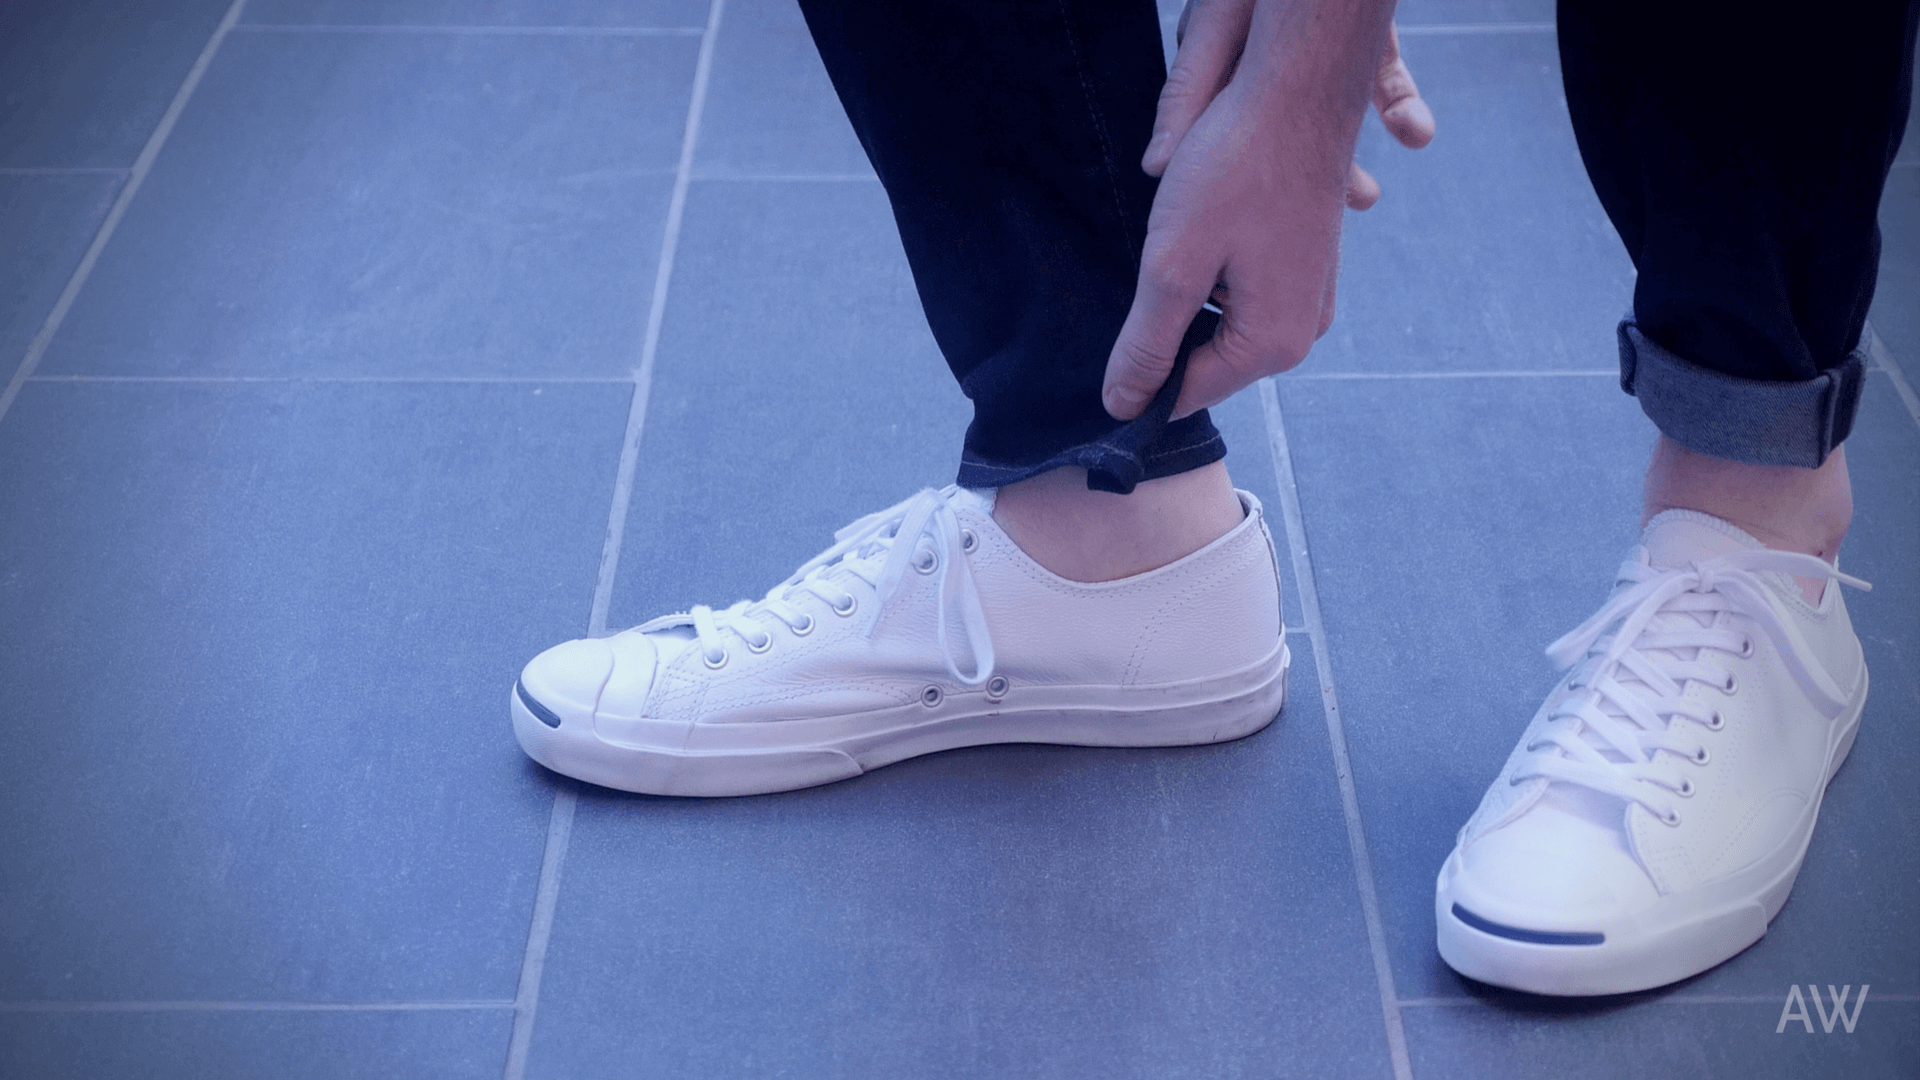 Cuffing Your Pants: 3 Things to Know